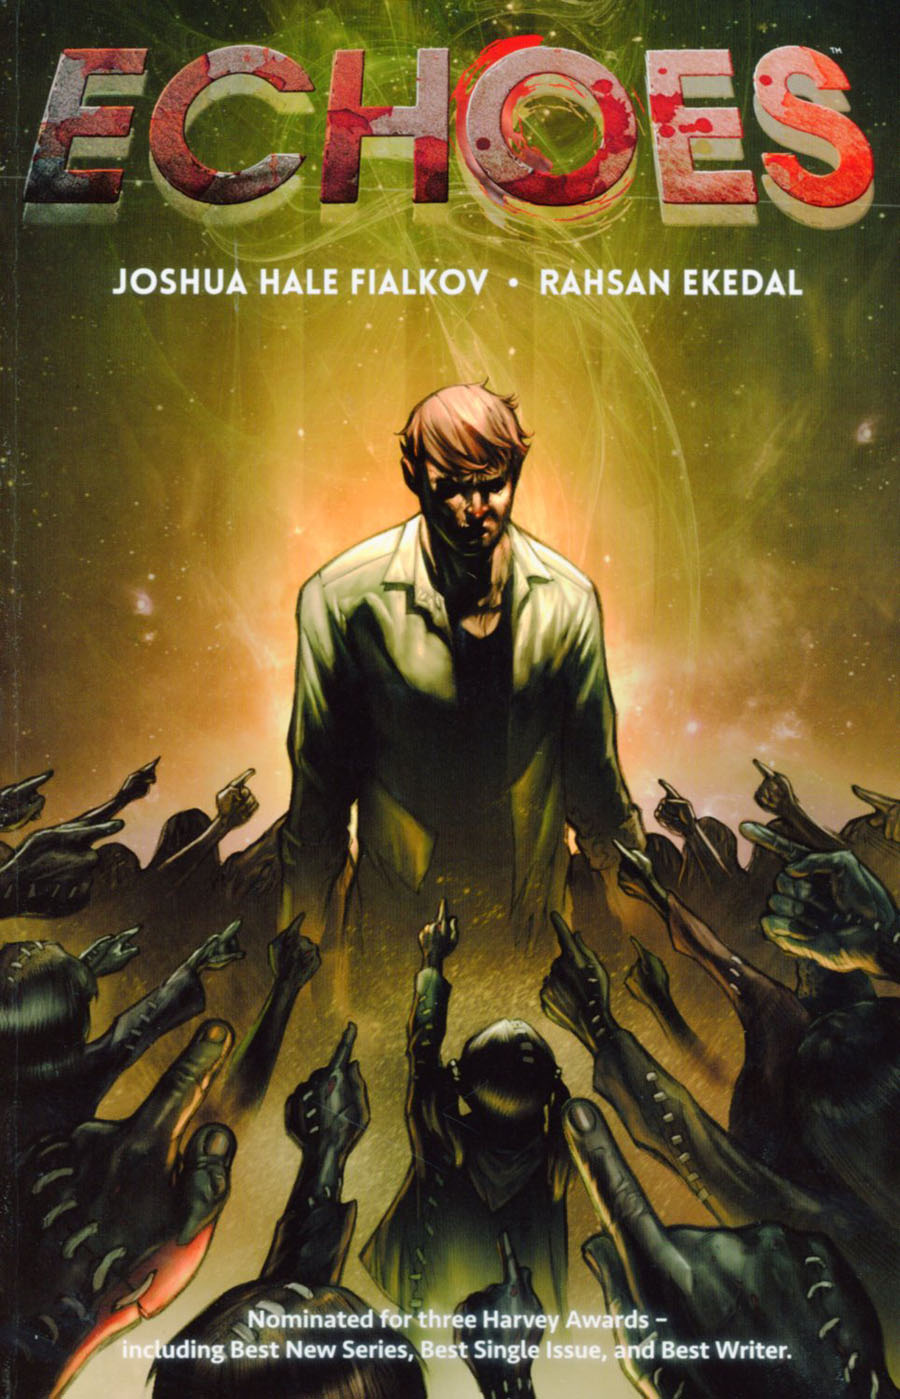 Echoes TP (Image/Top Cow)